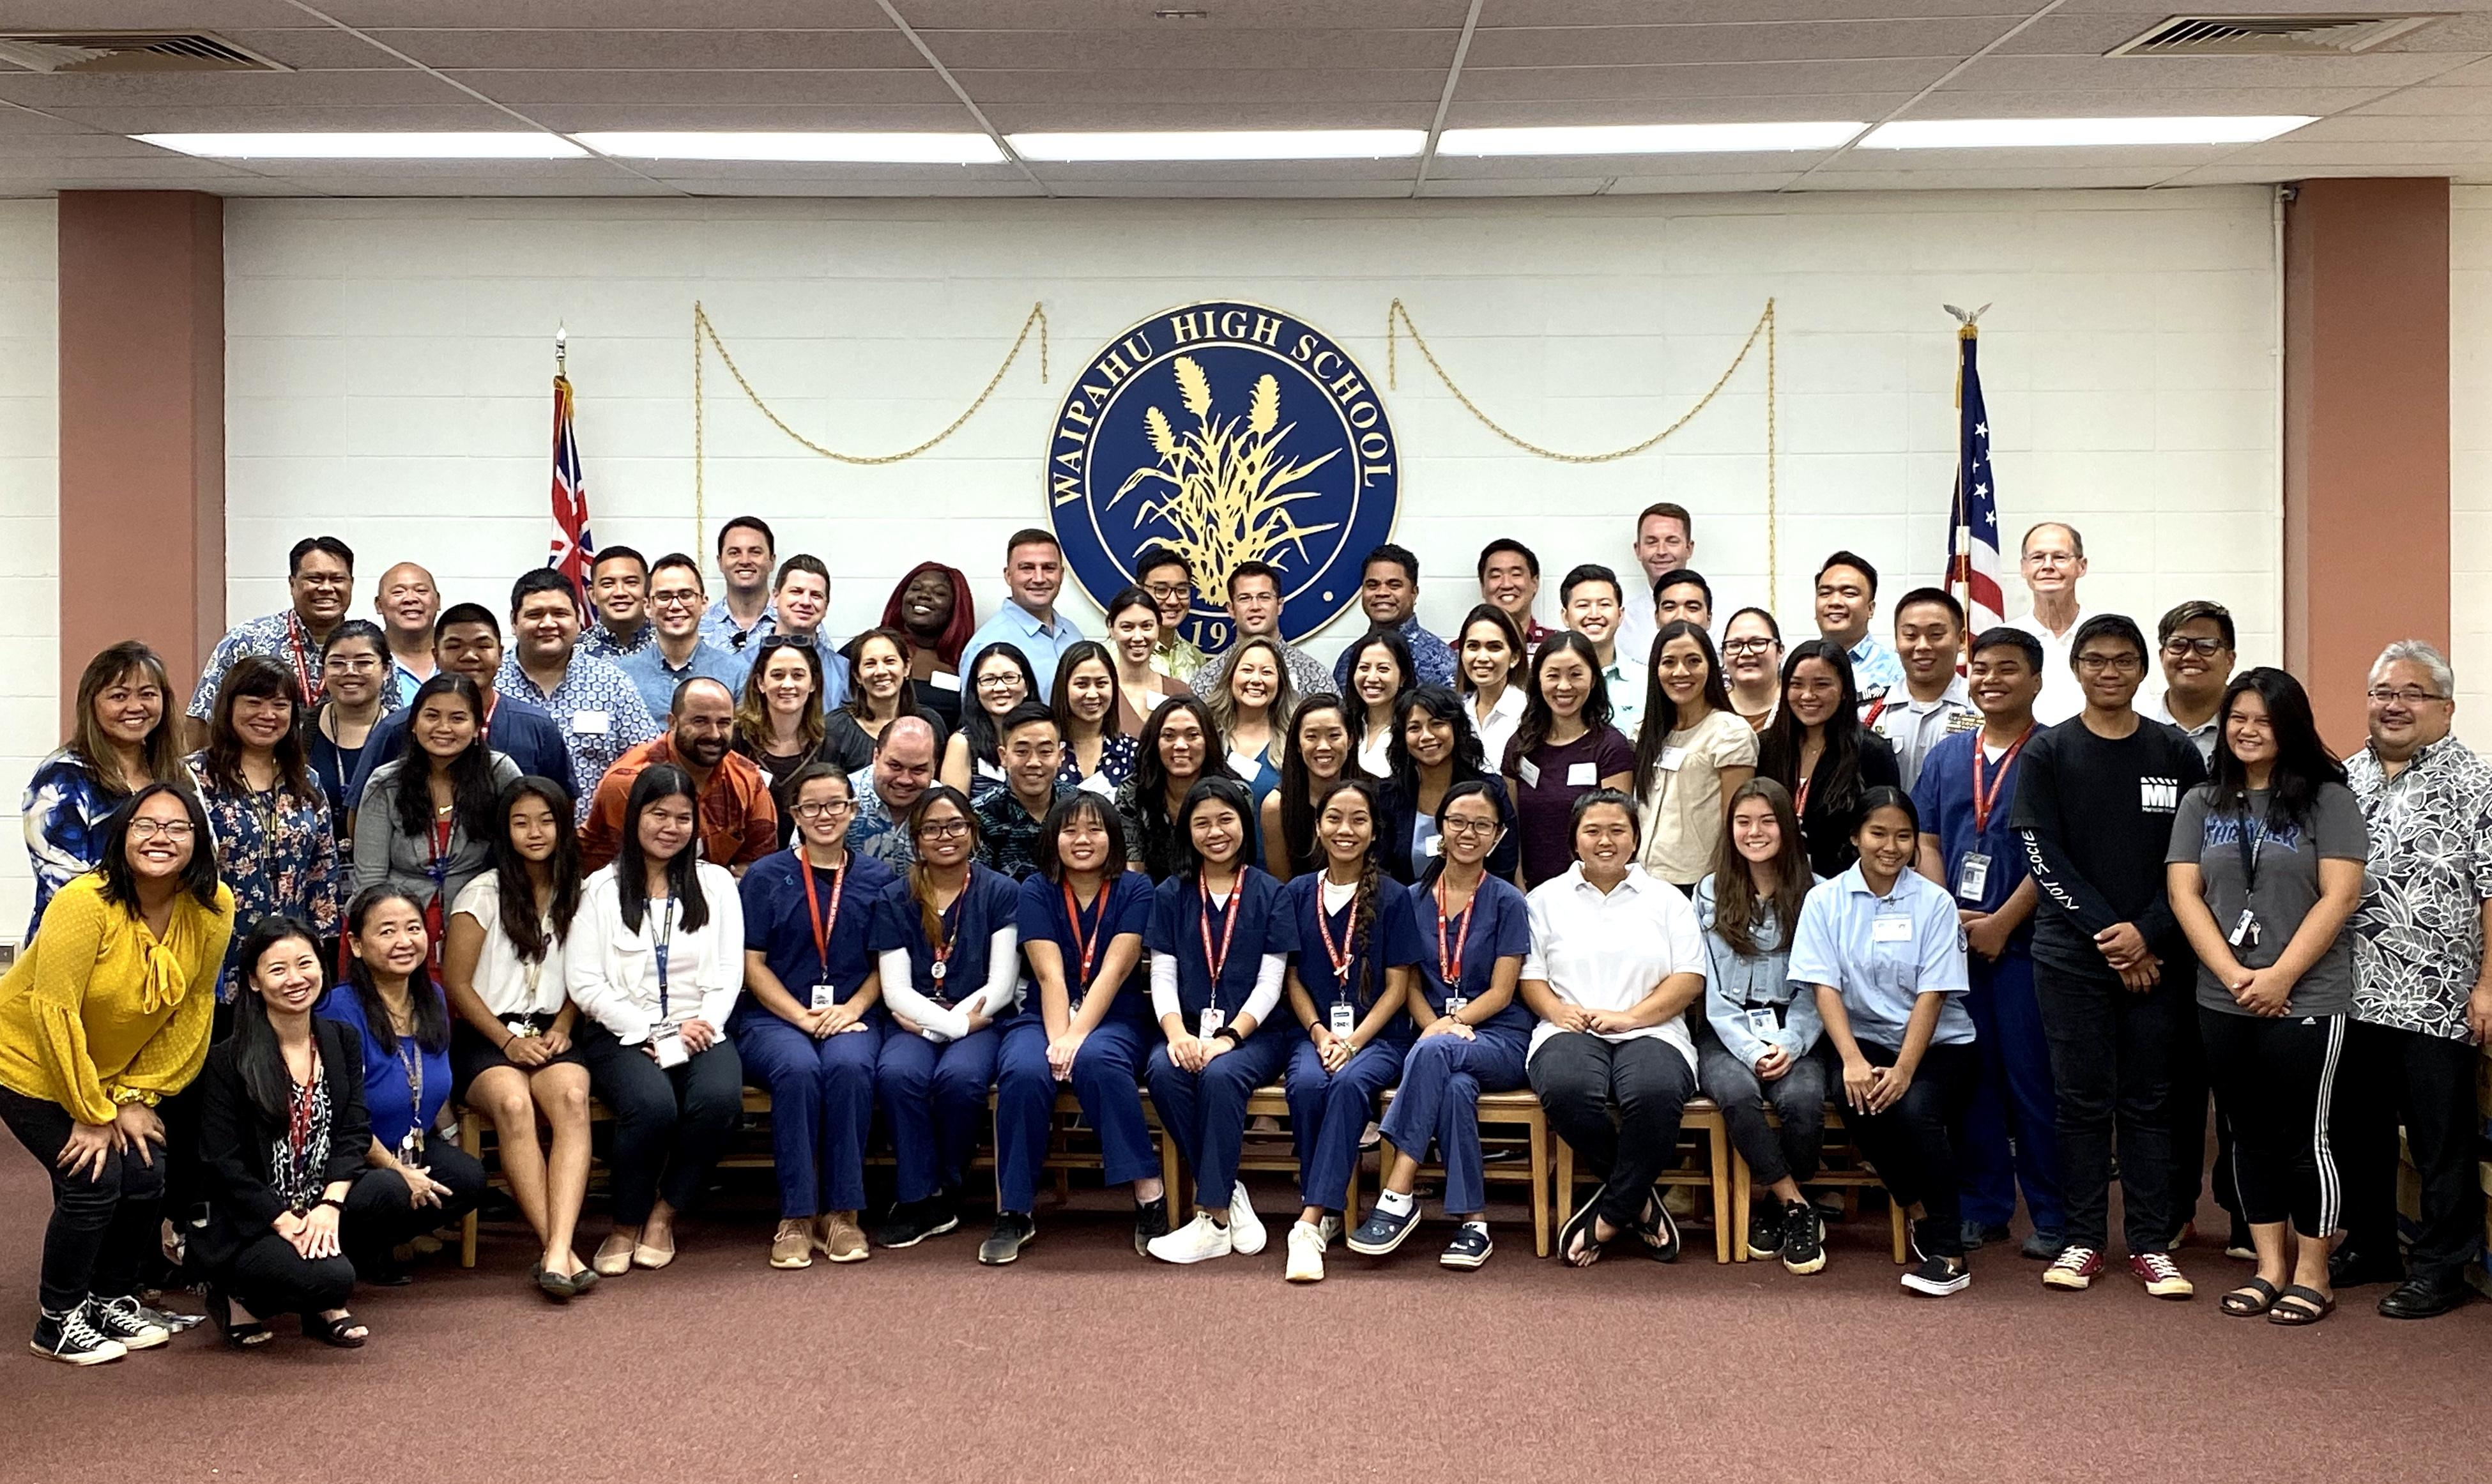 Pacific Century Fellows photographed with students and staff of Waipahu High School